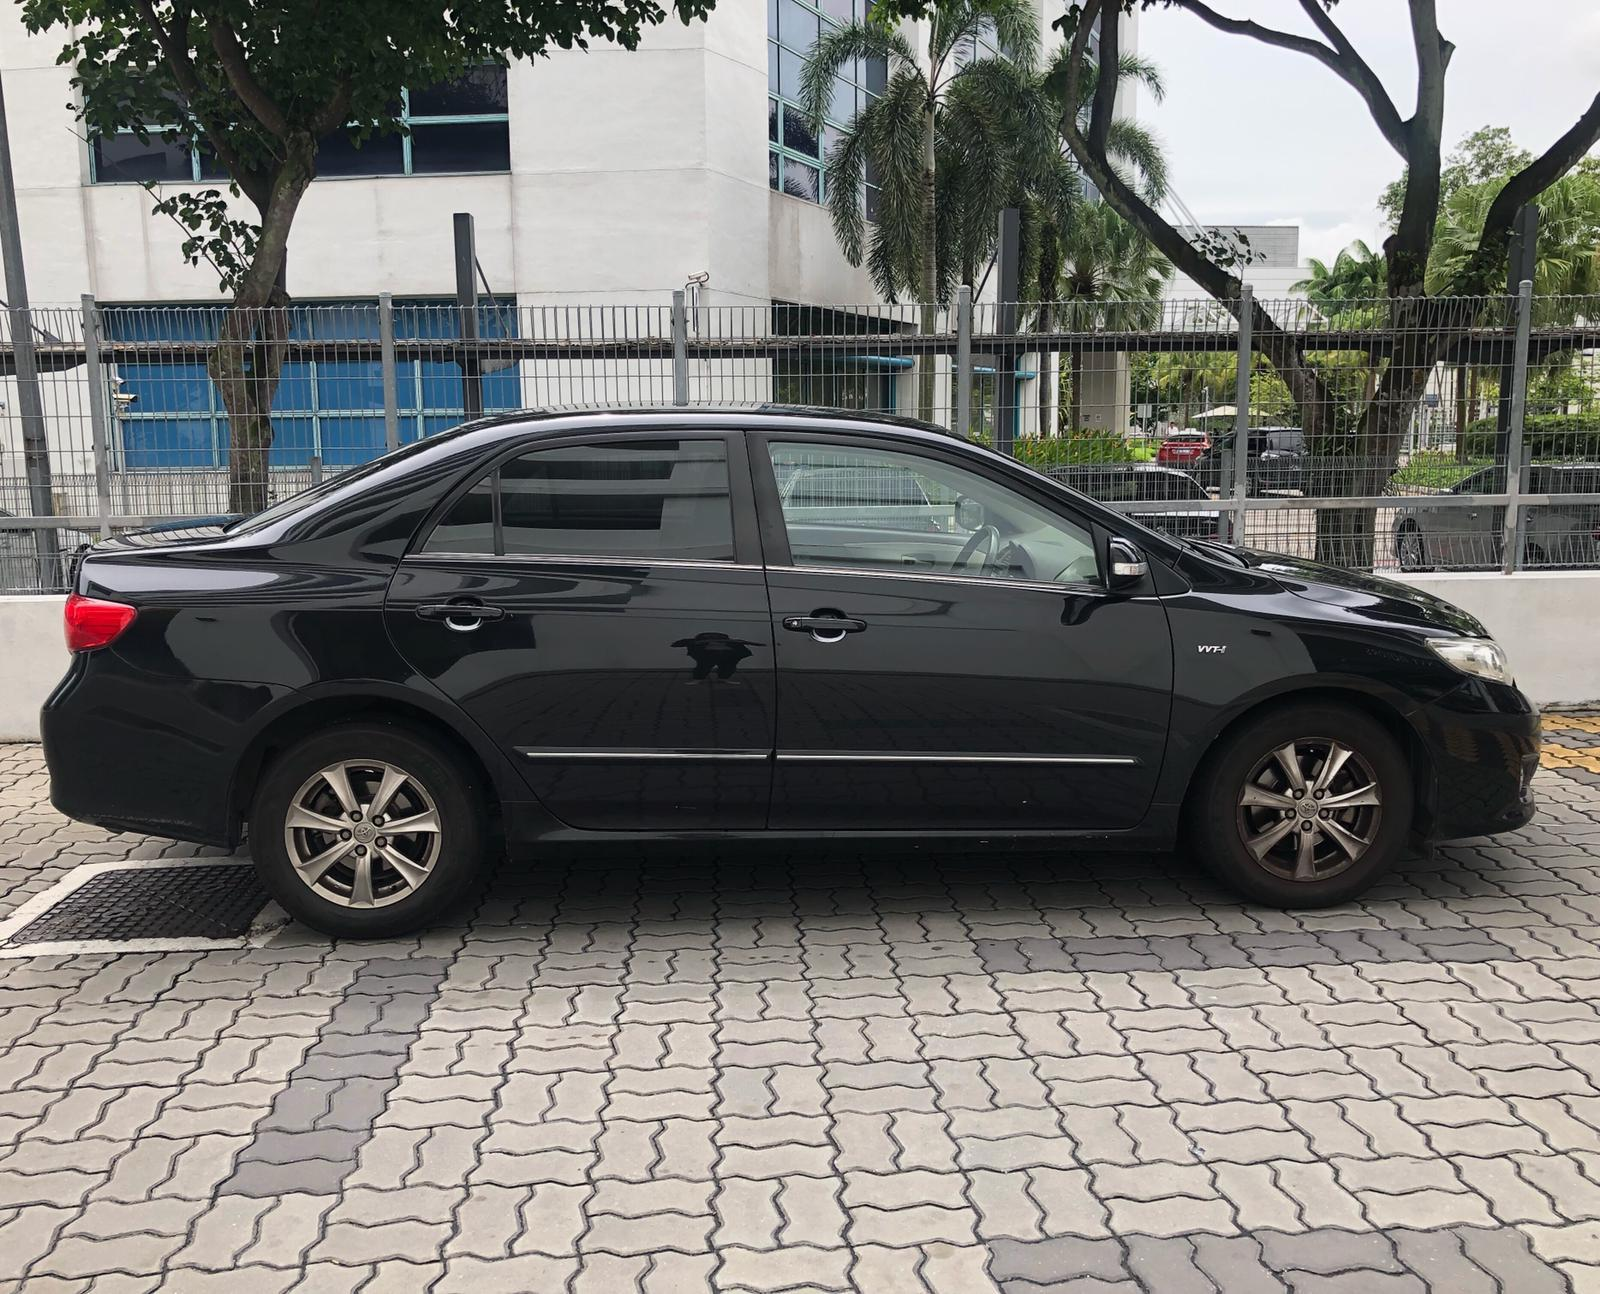 Toyota Altis 1.6a RENT $50 per day PHV  For Rent  Grab Rental Gojek Or Personal Use Low price and Cheap